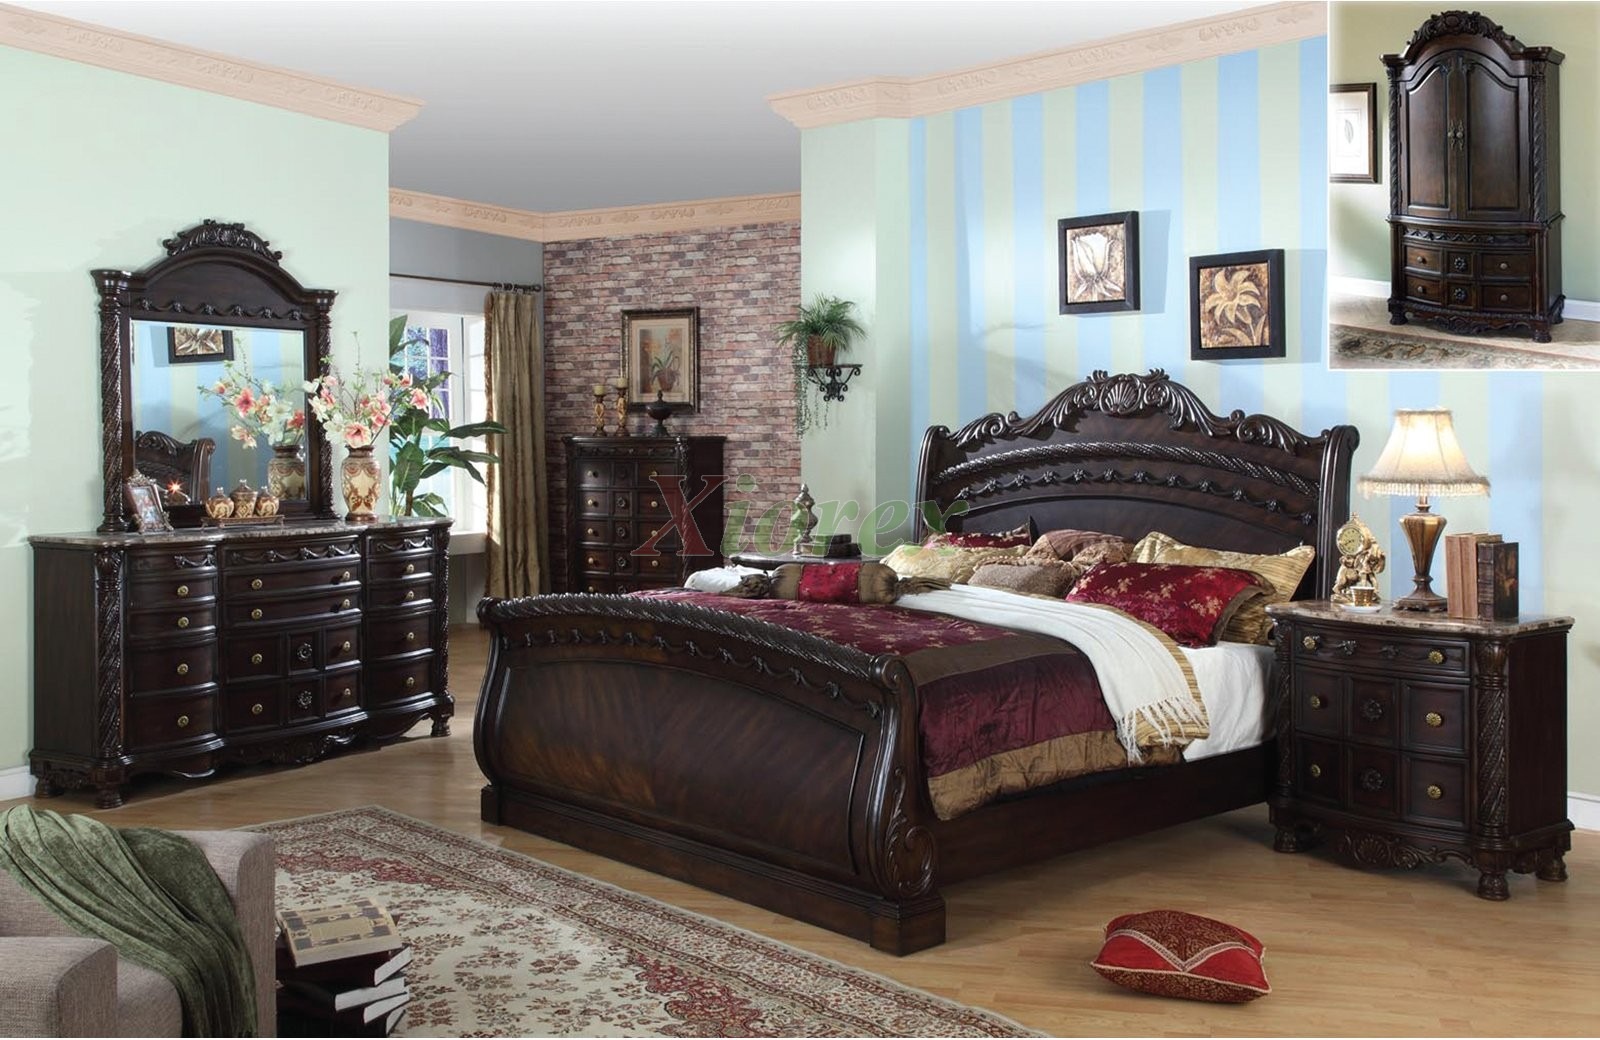 Bedroom Furniture Traditional traditional sleigh bedroom furniture set 108 | xiorex